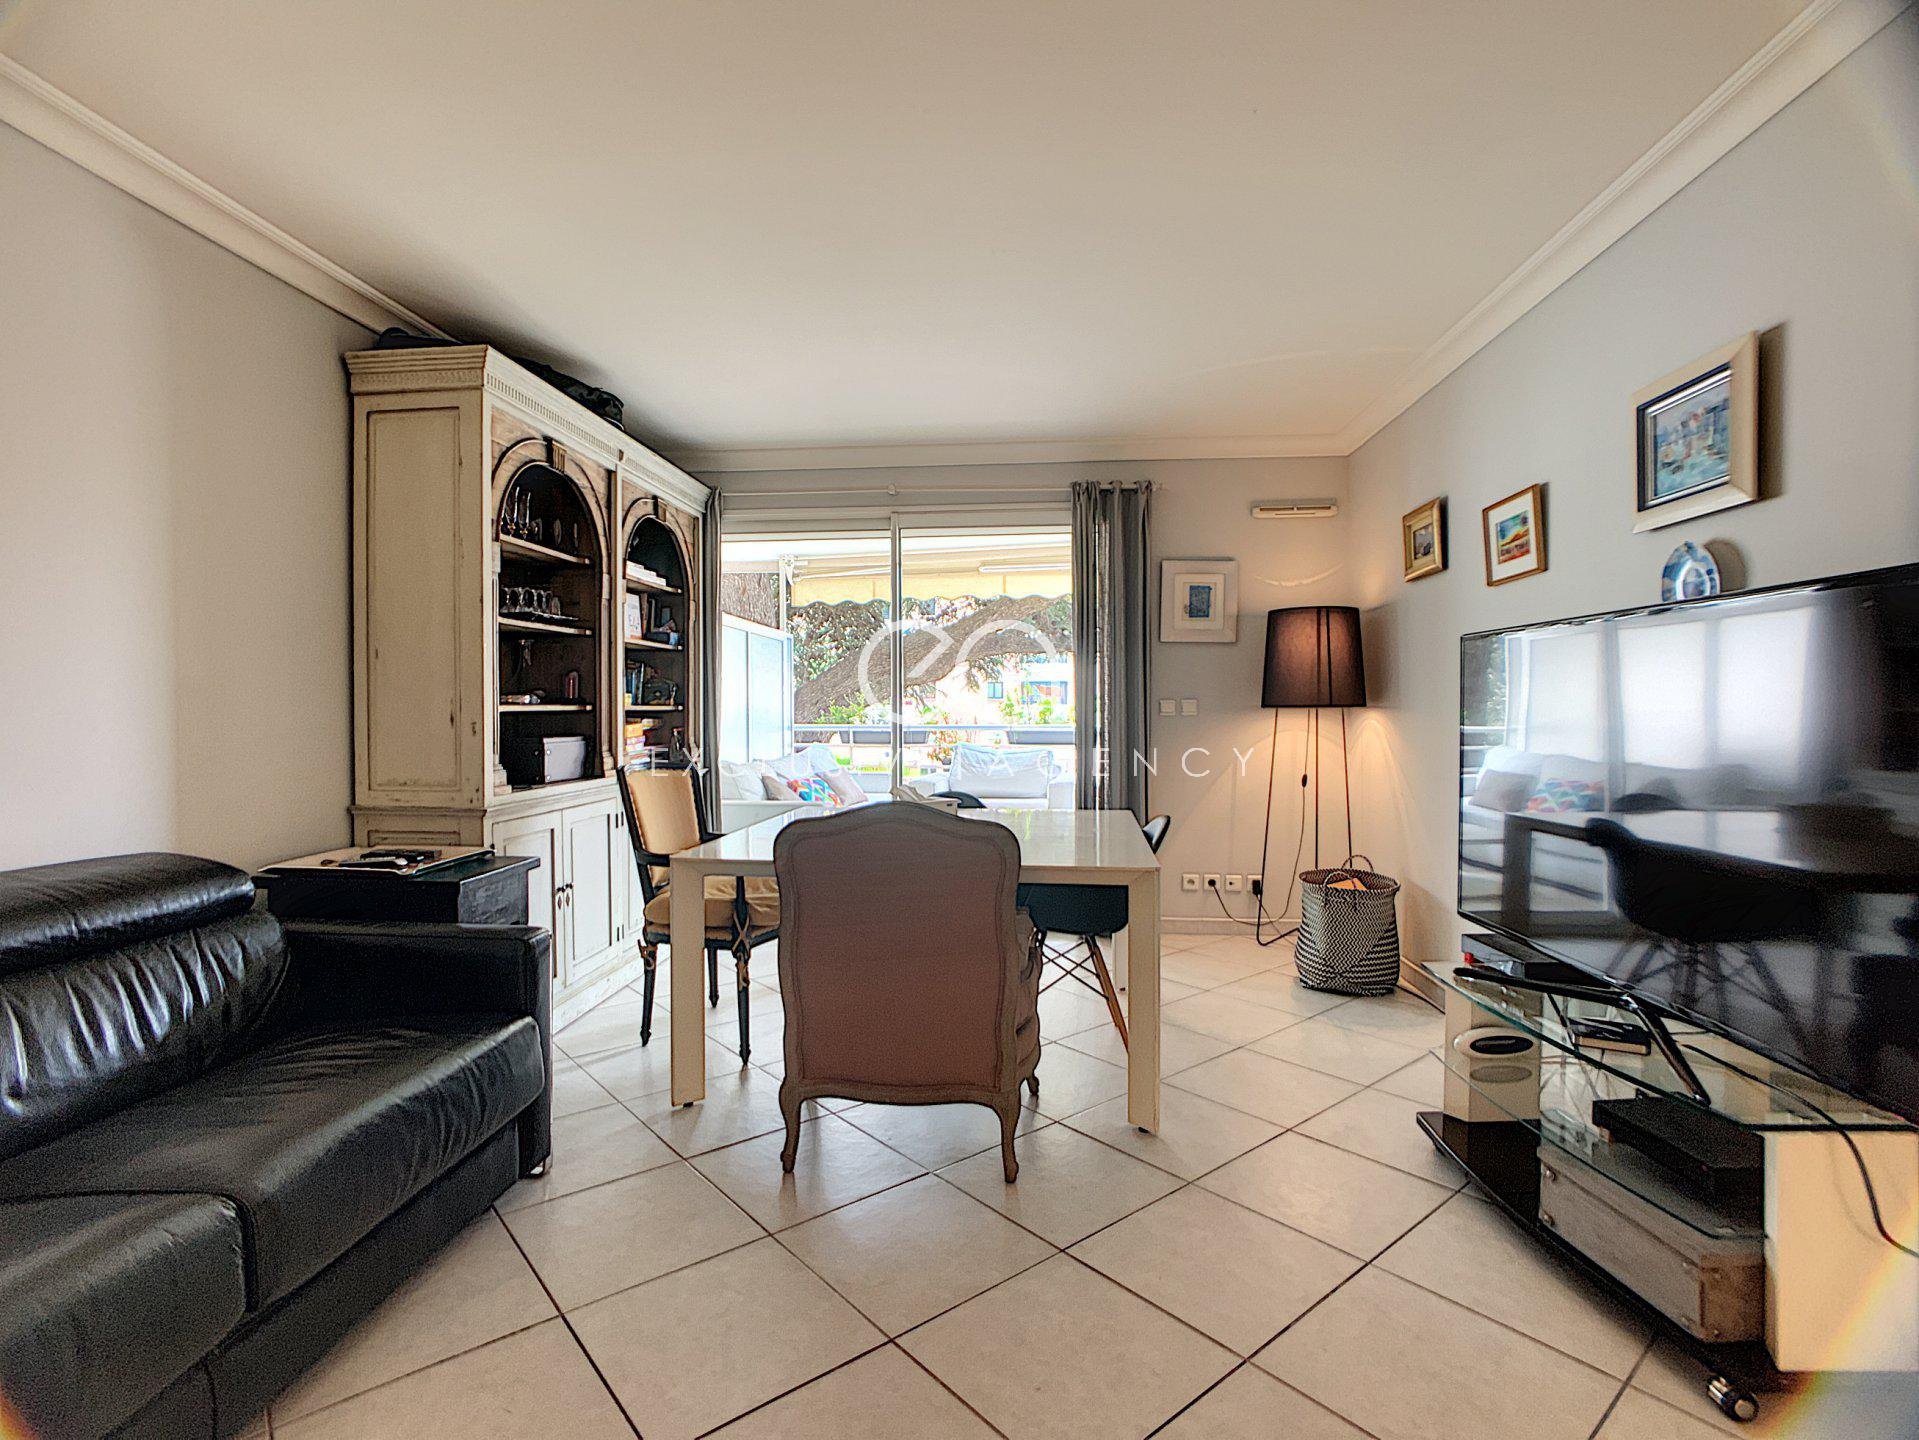 Cannes city center 2-bedroom apartment  of 66m2 with garage.